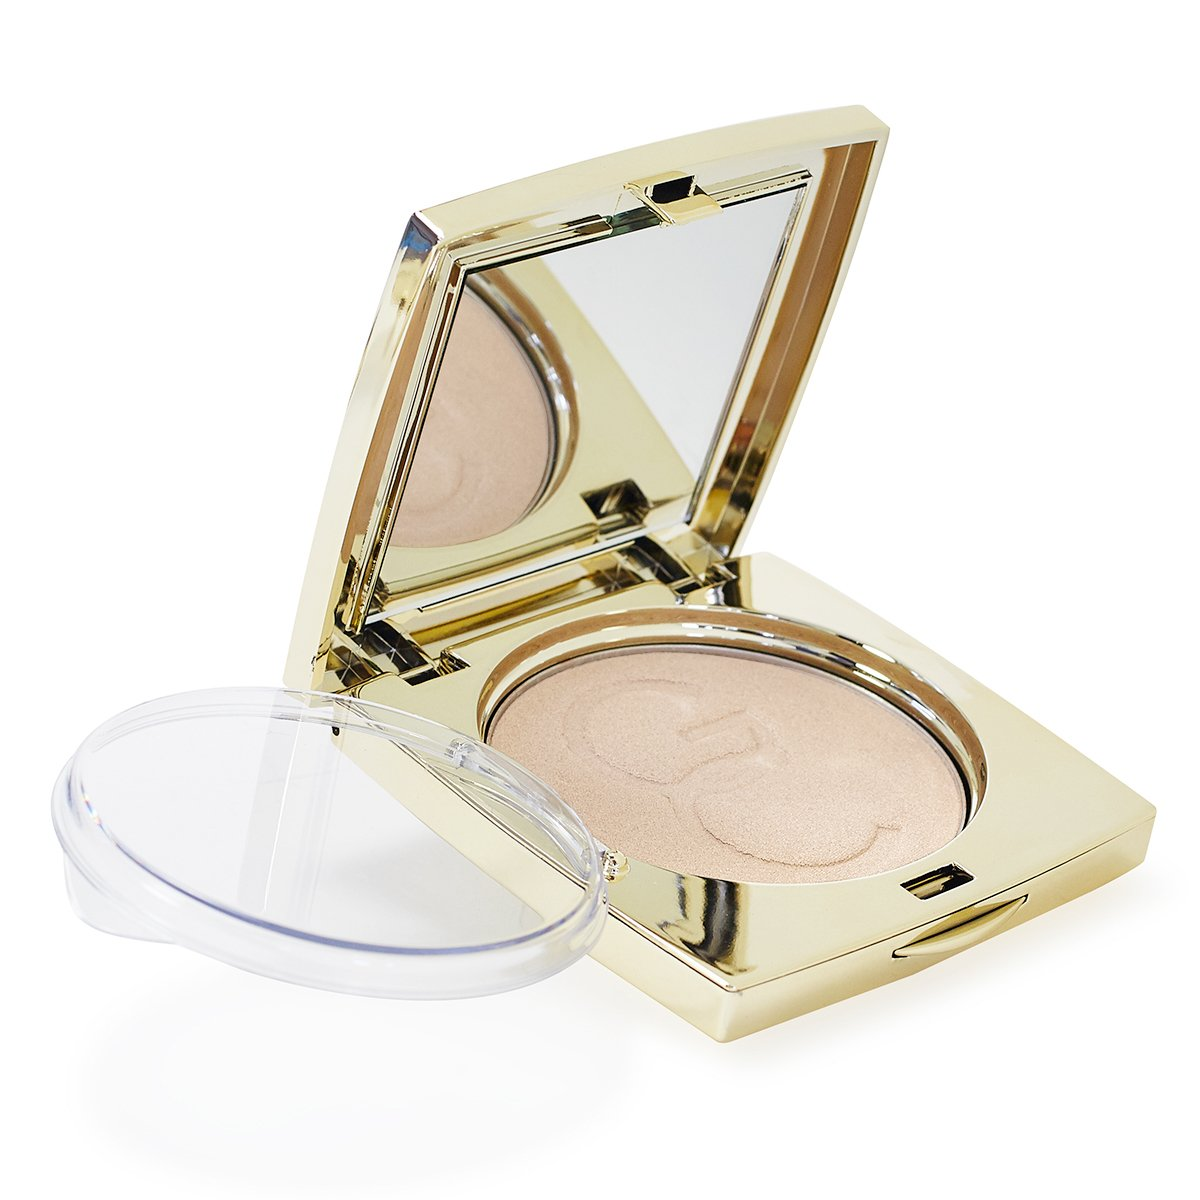 Gerard Cosmetics Star Powder in Grace - GetDollied USA